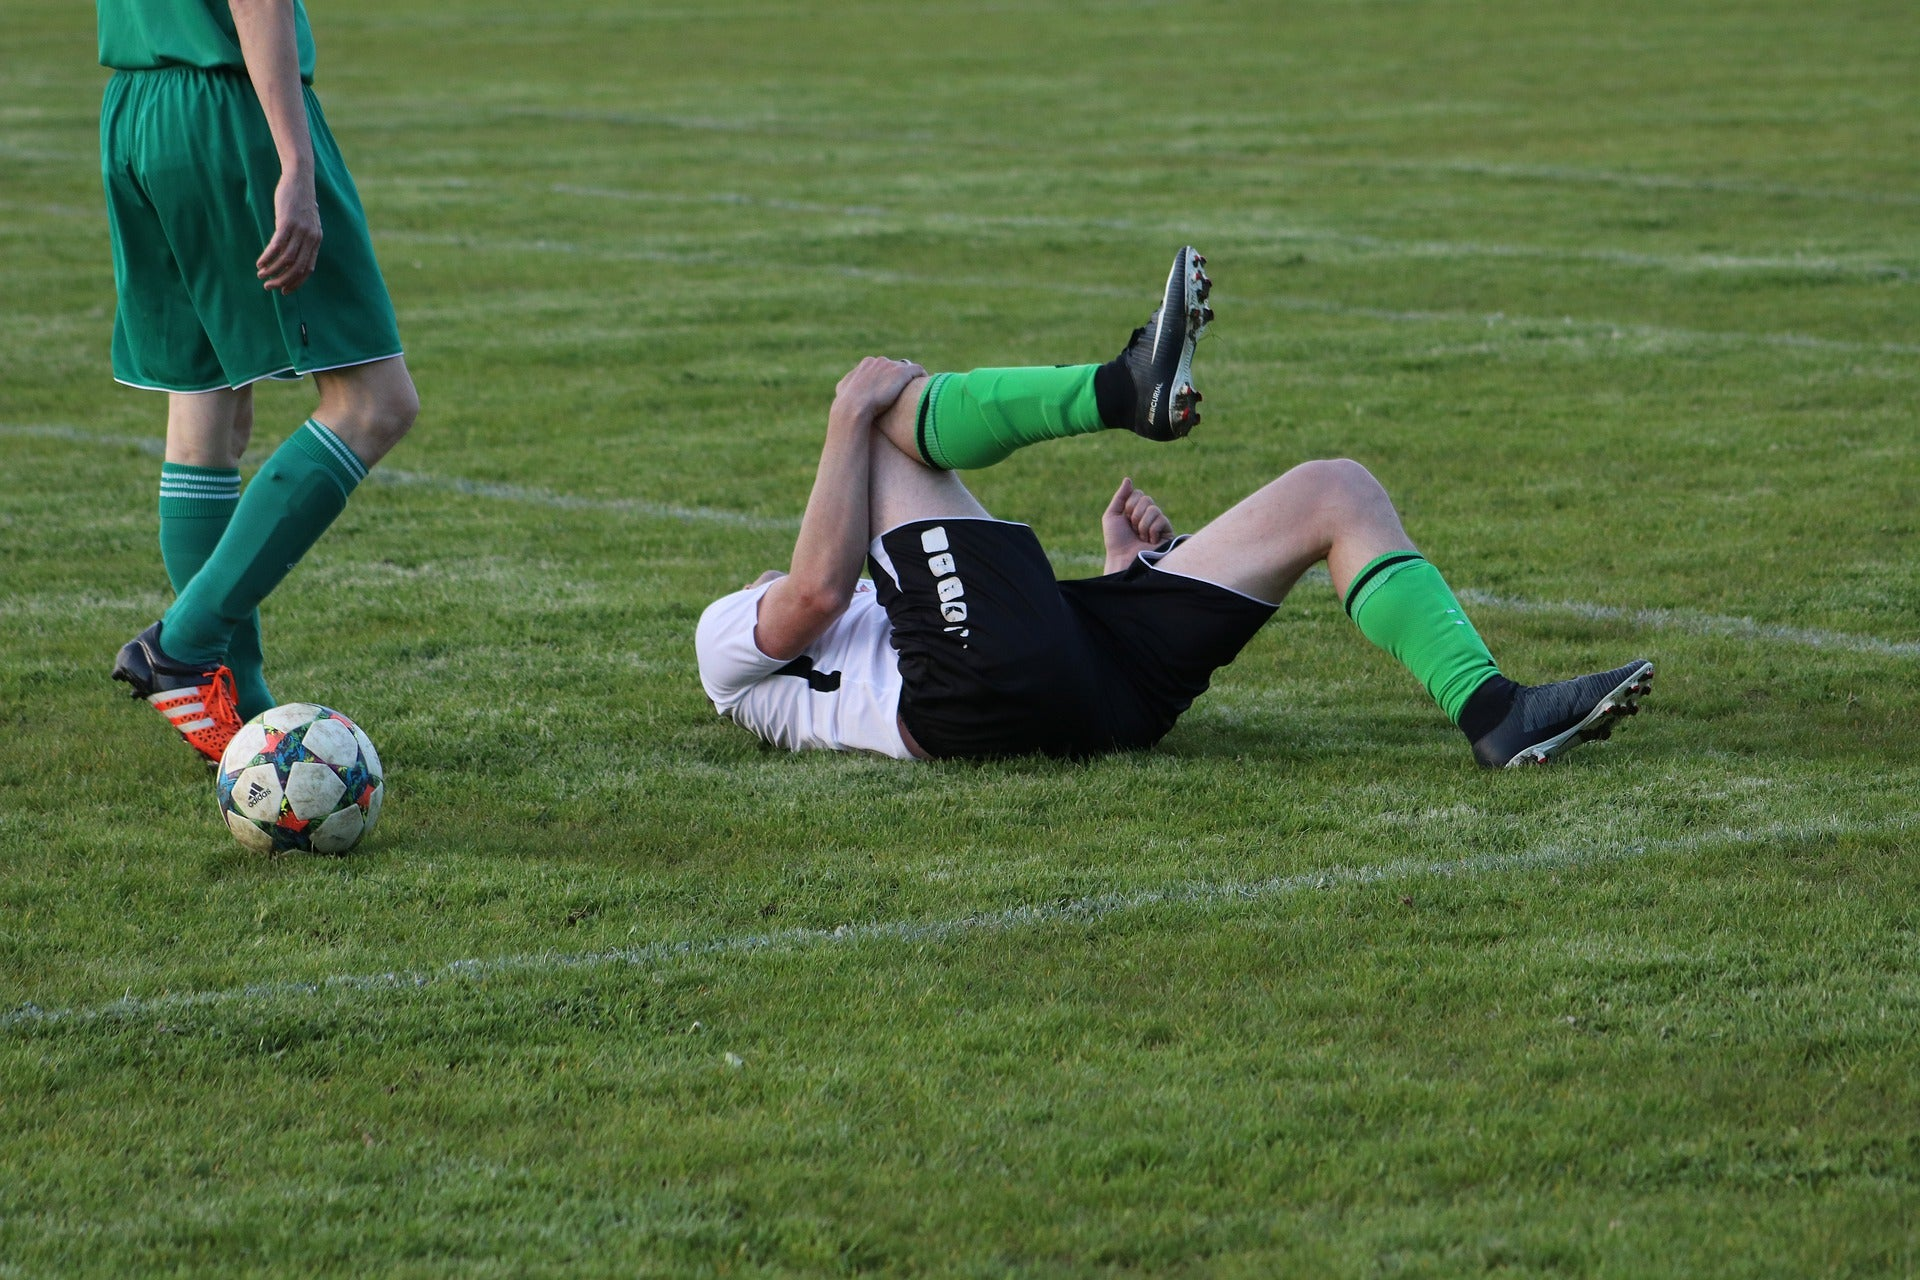 9 Most Common Sports Injuries [And What to Do About Them]